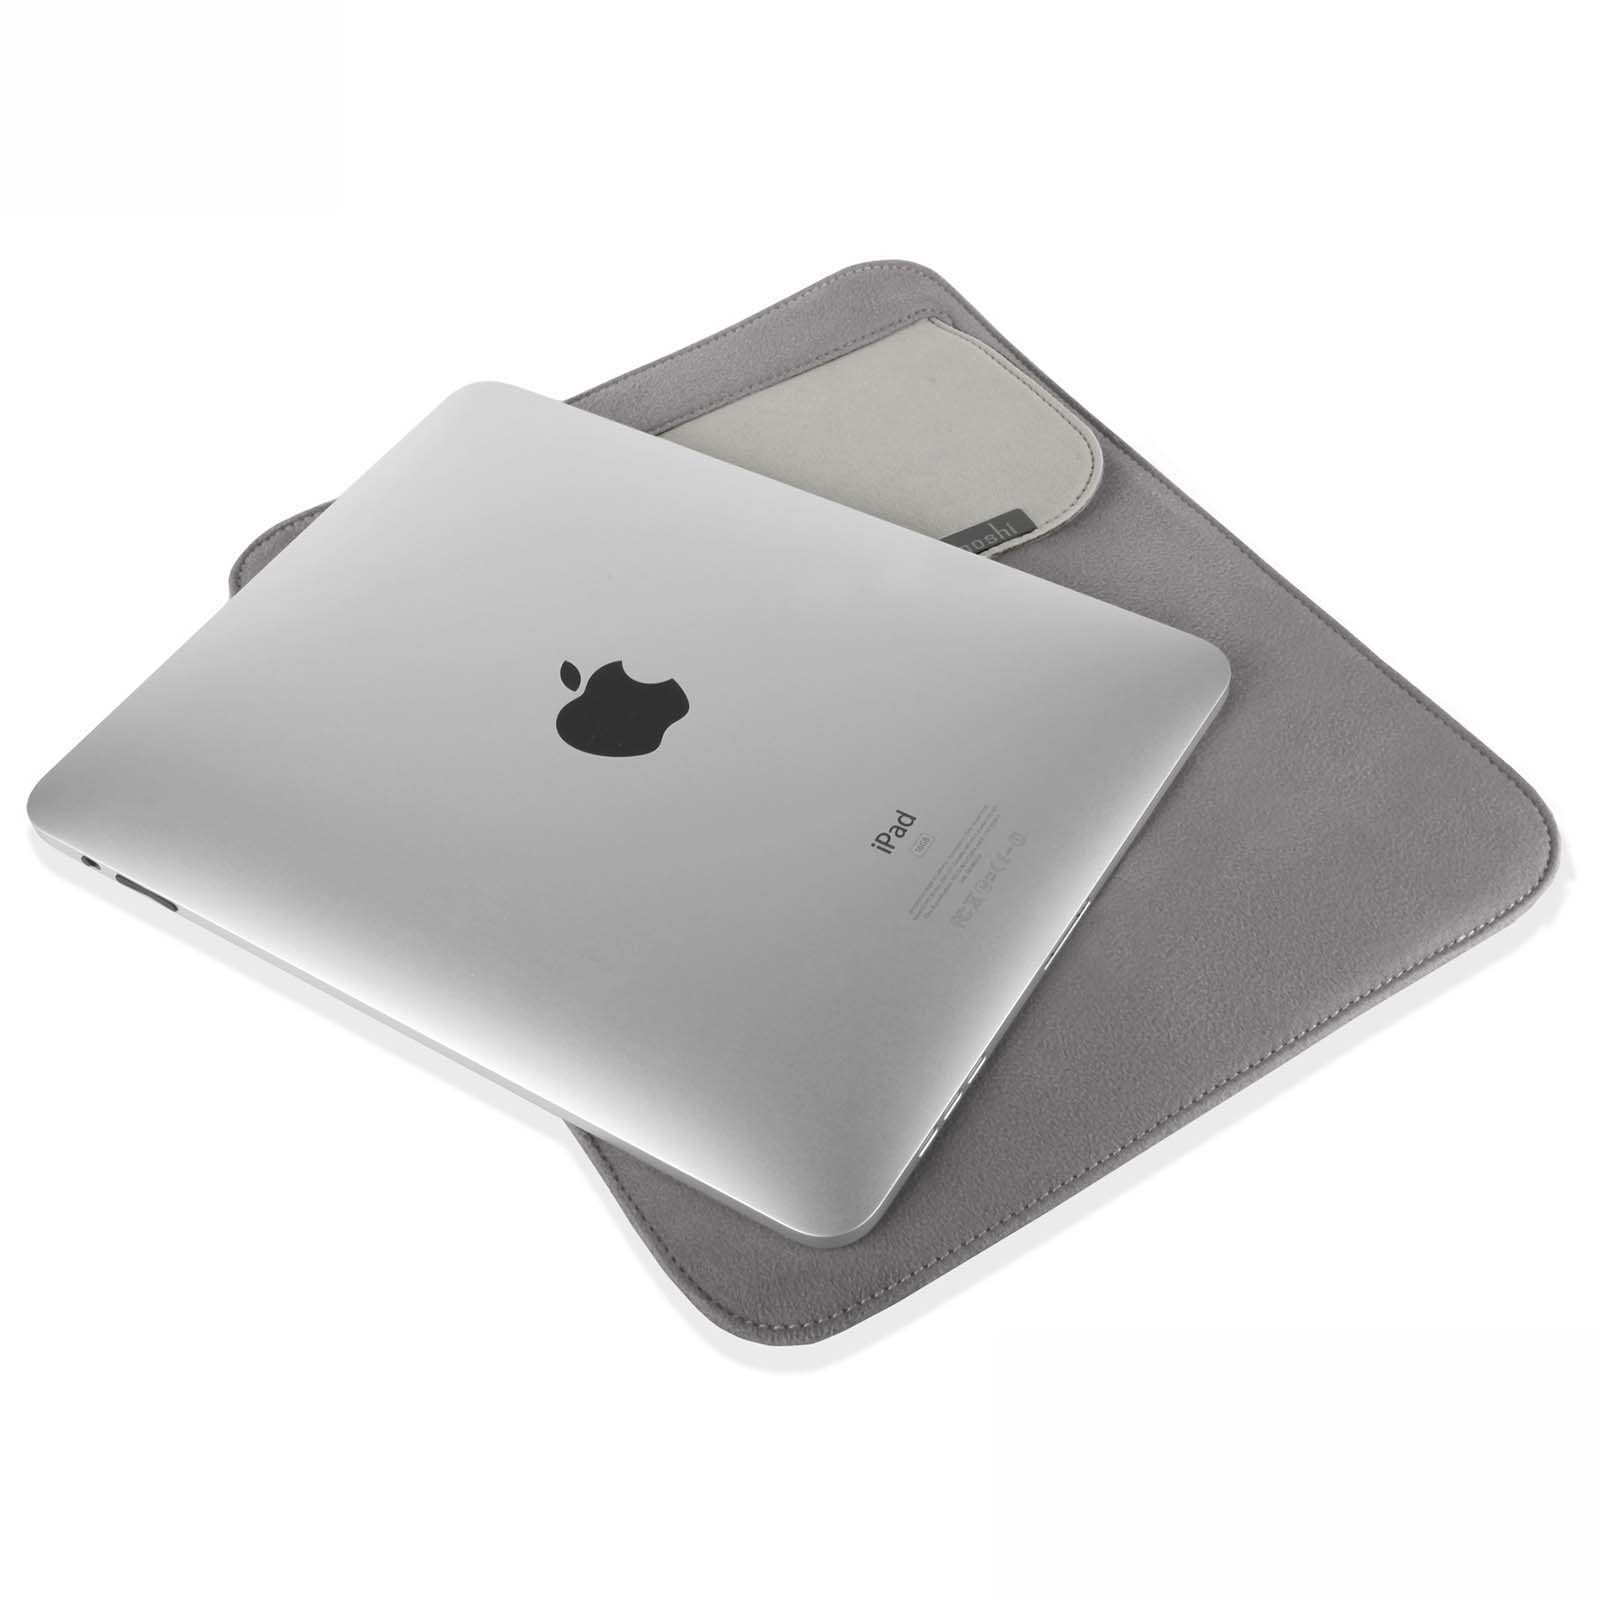 Muse Slim Fit Sleeve for iPad-image